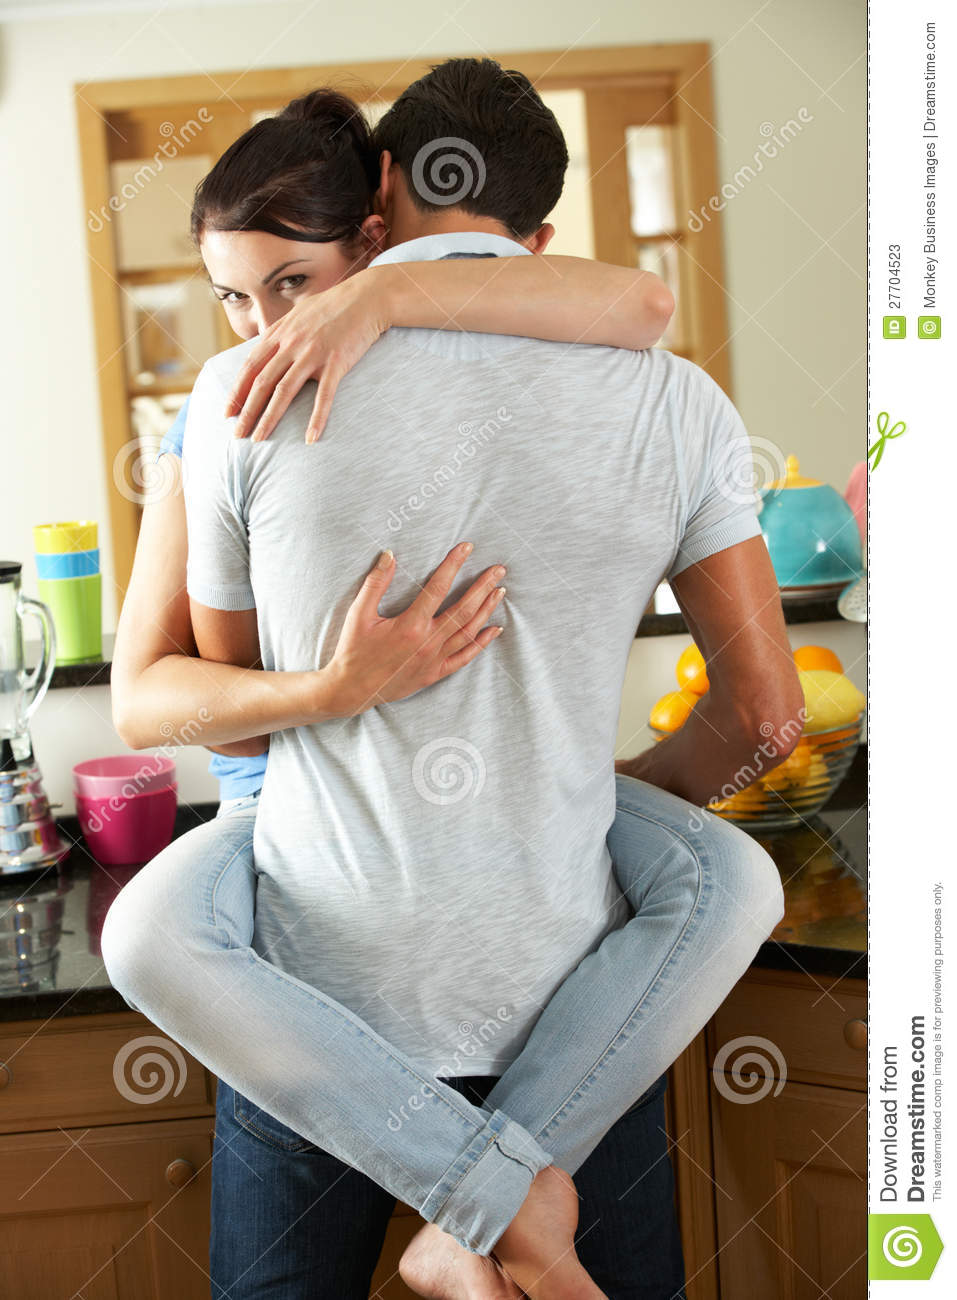 Romantic Couple Hugging In Kitchen Stock Image - Image of female ...